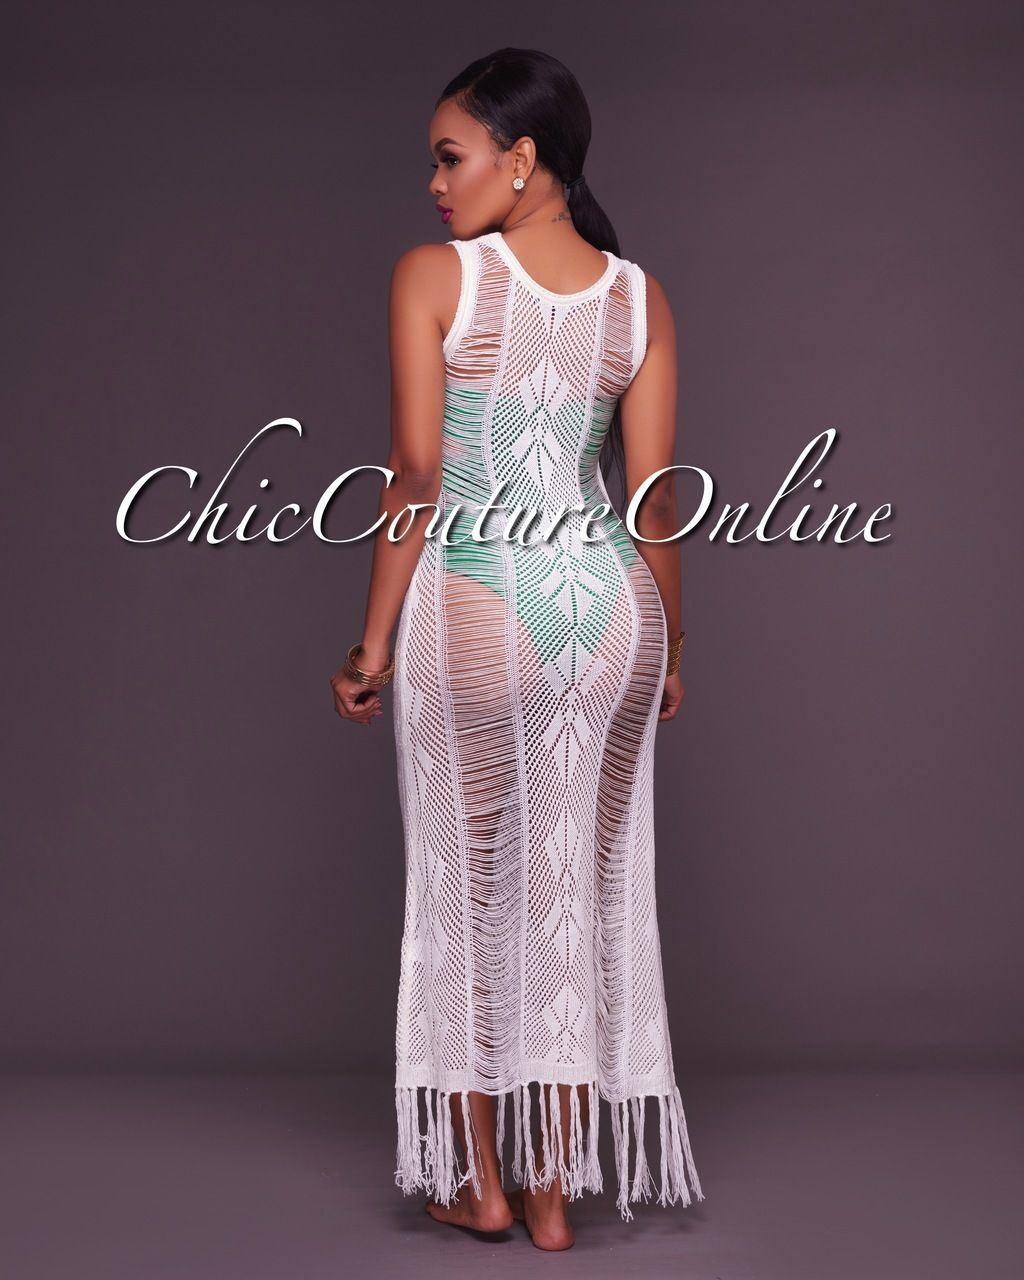 c44c6460ec Roma White Crochet Cover-Up Dress in 2019 | Clothing ~ Chic Couture ...